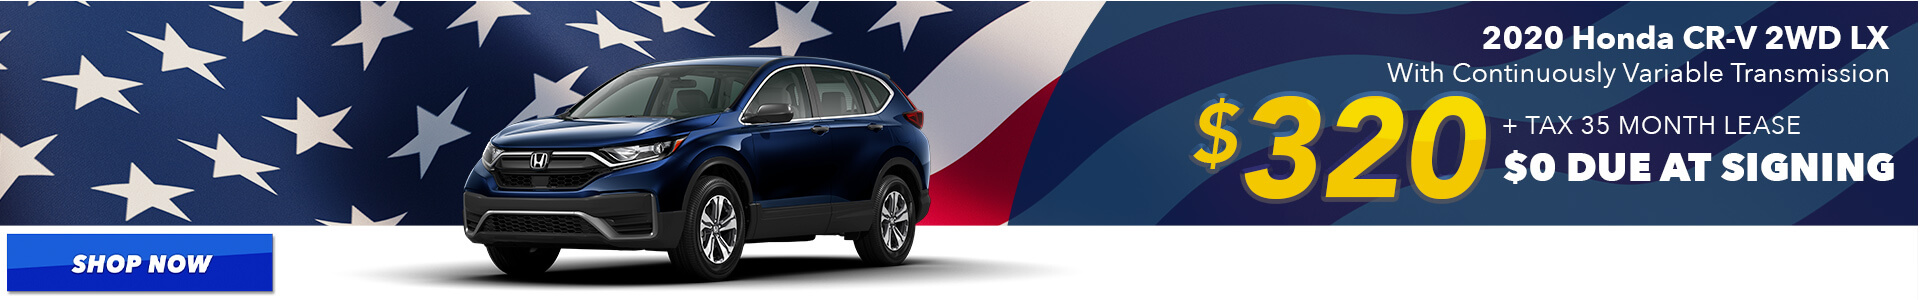 2020 CR-V - Lease for $320